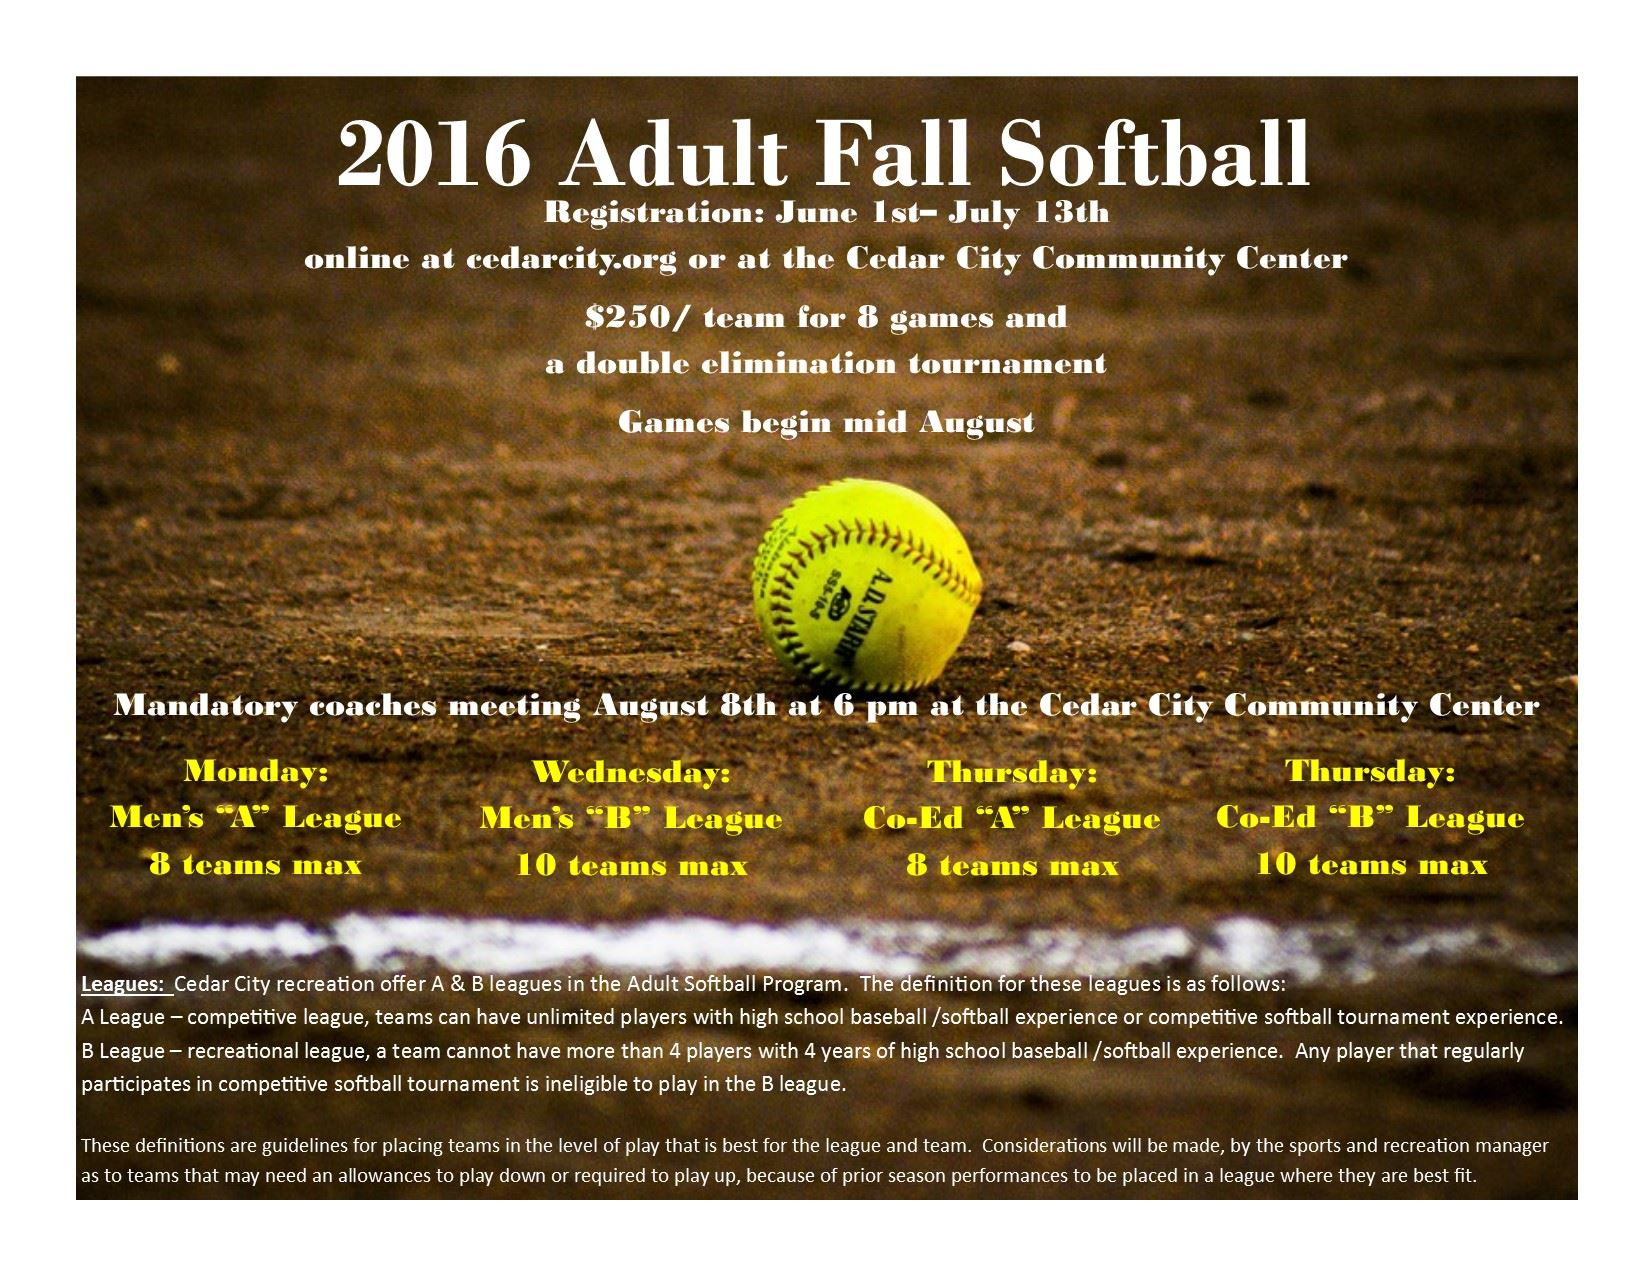 2016 Adult Fall Softball FLYER